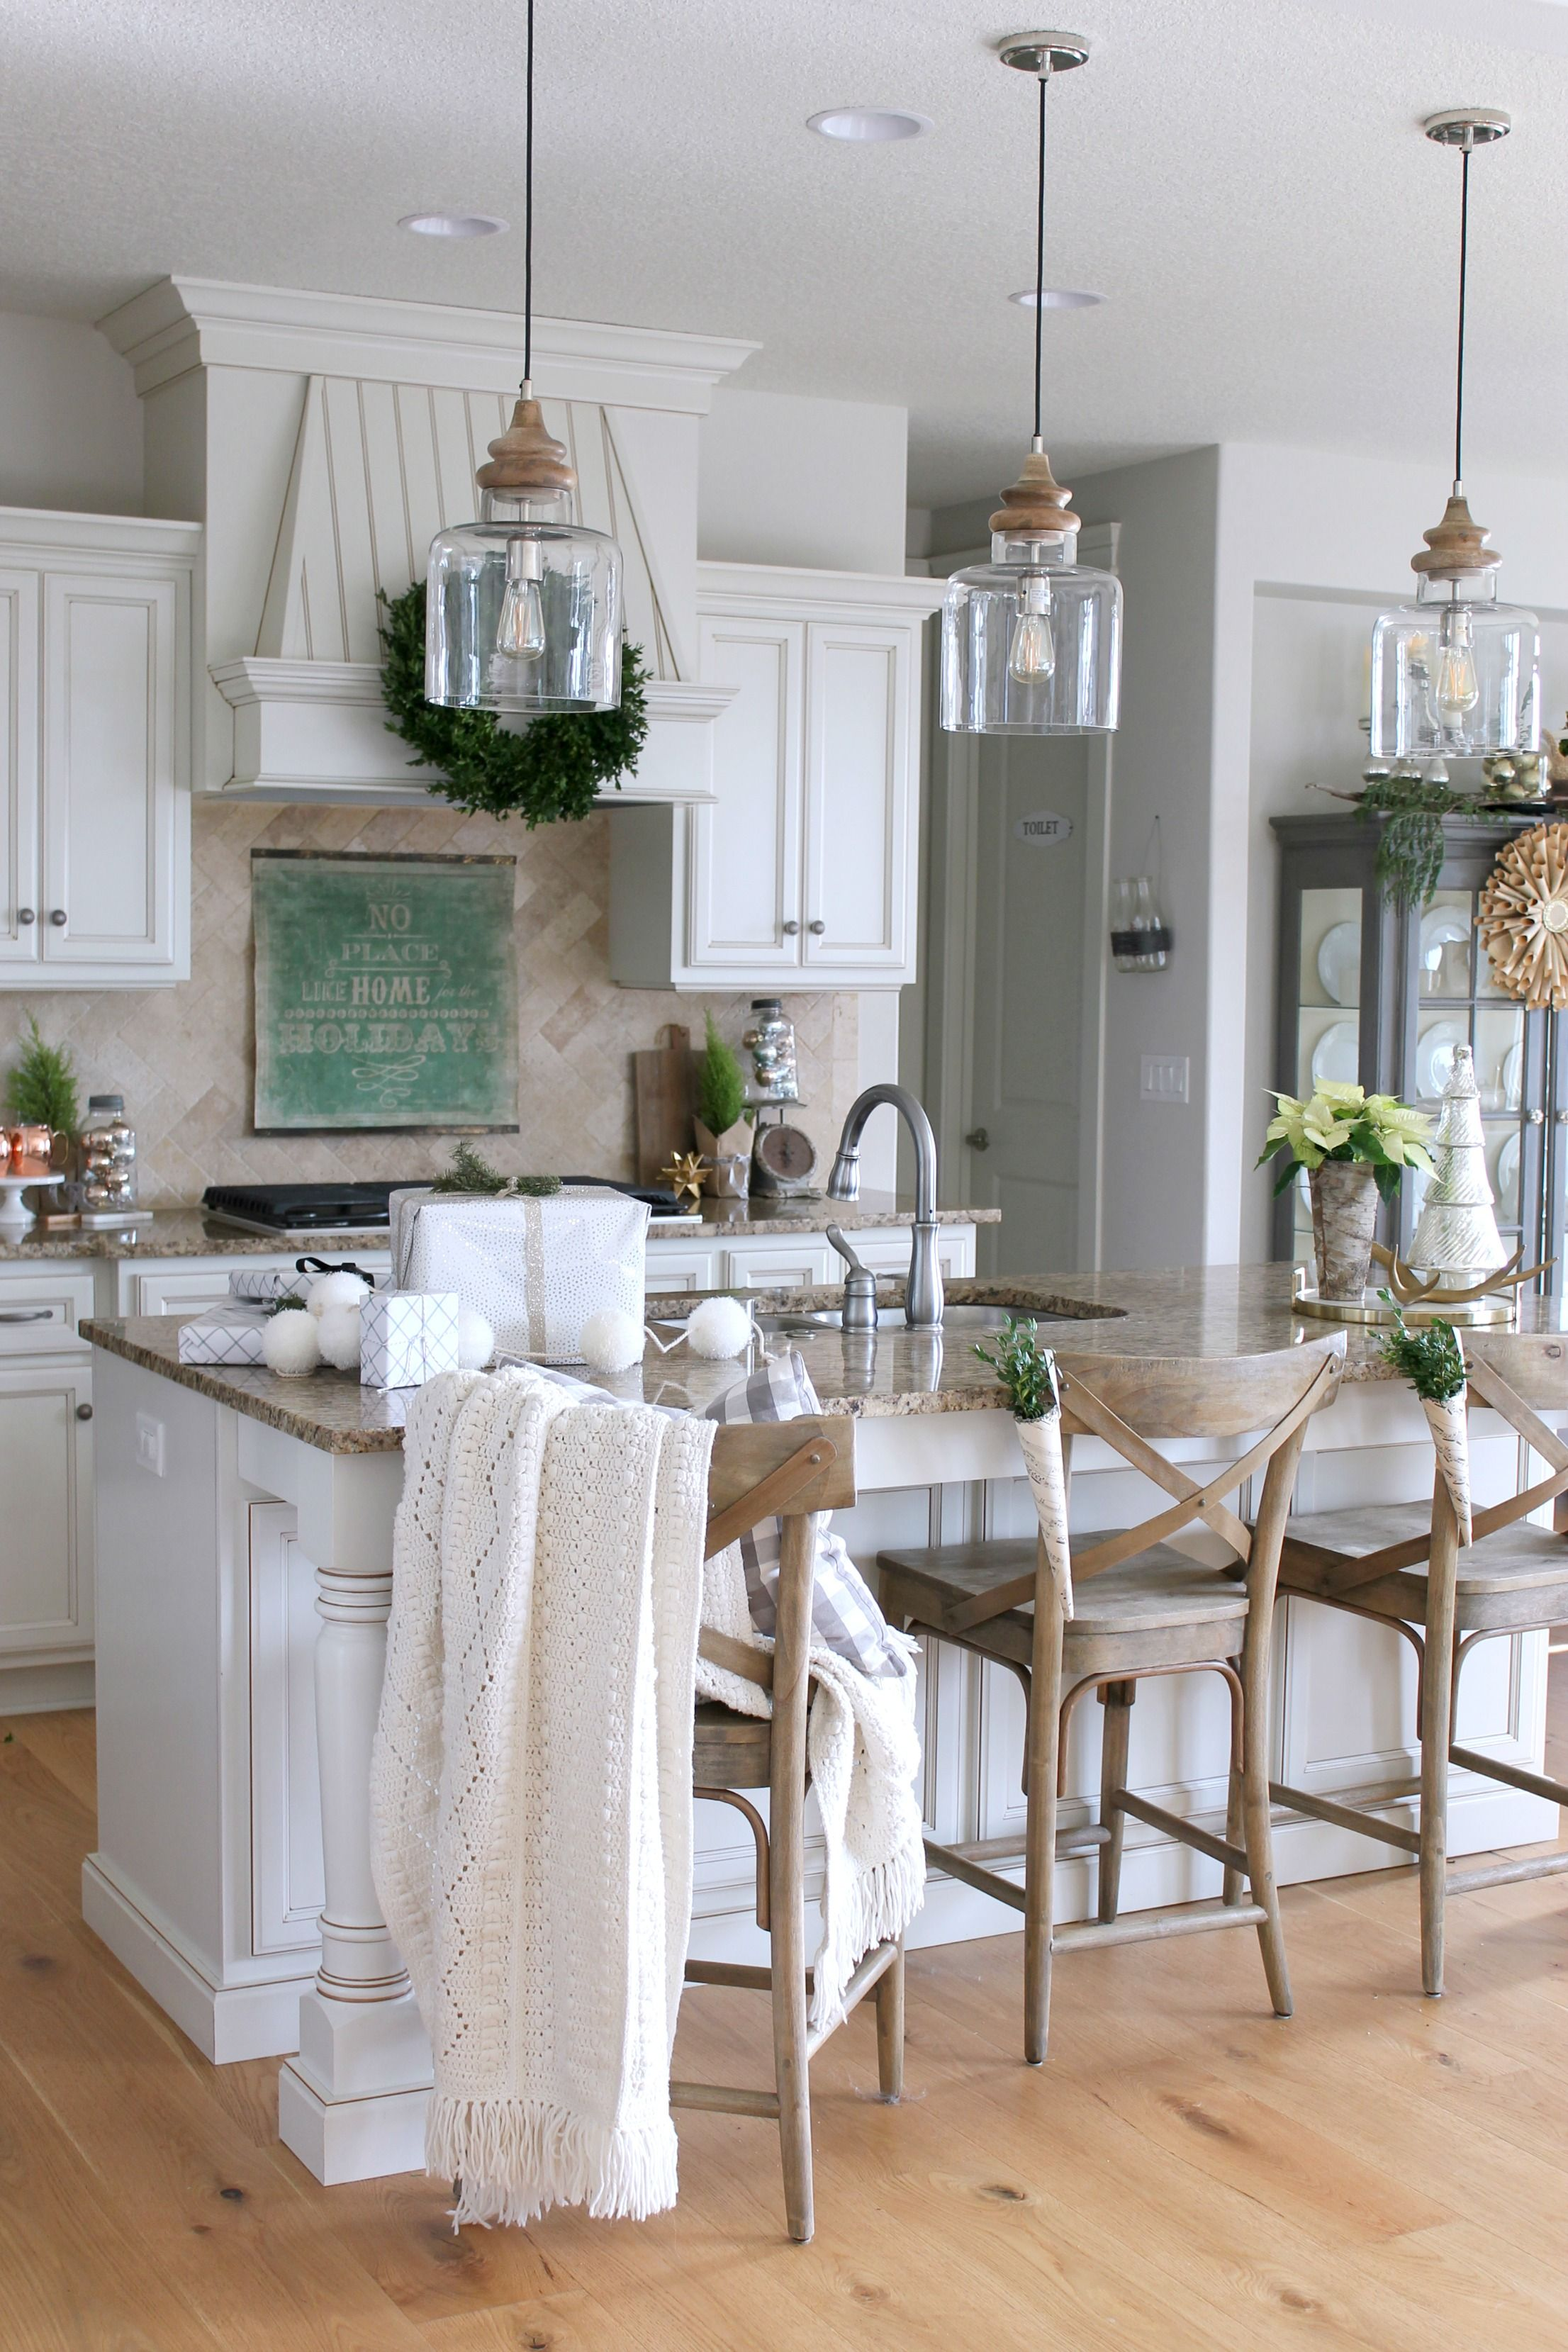 New Farmhouse Style Island Pendant Lights Kitchens Pinterest - Buy kitchen pendant lights